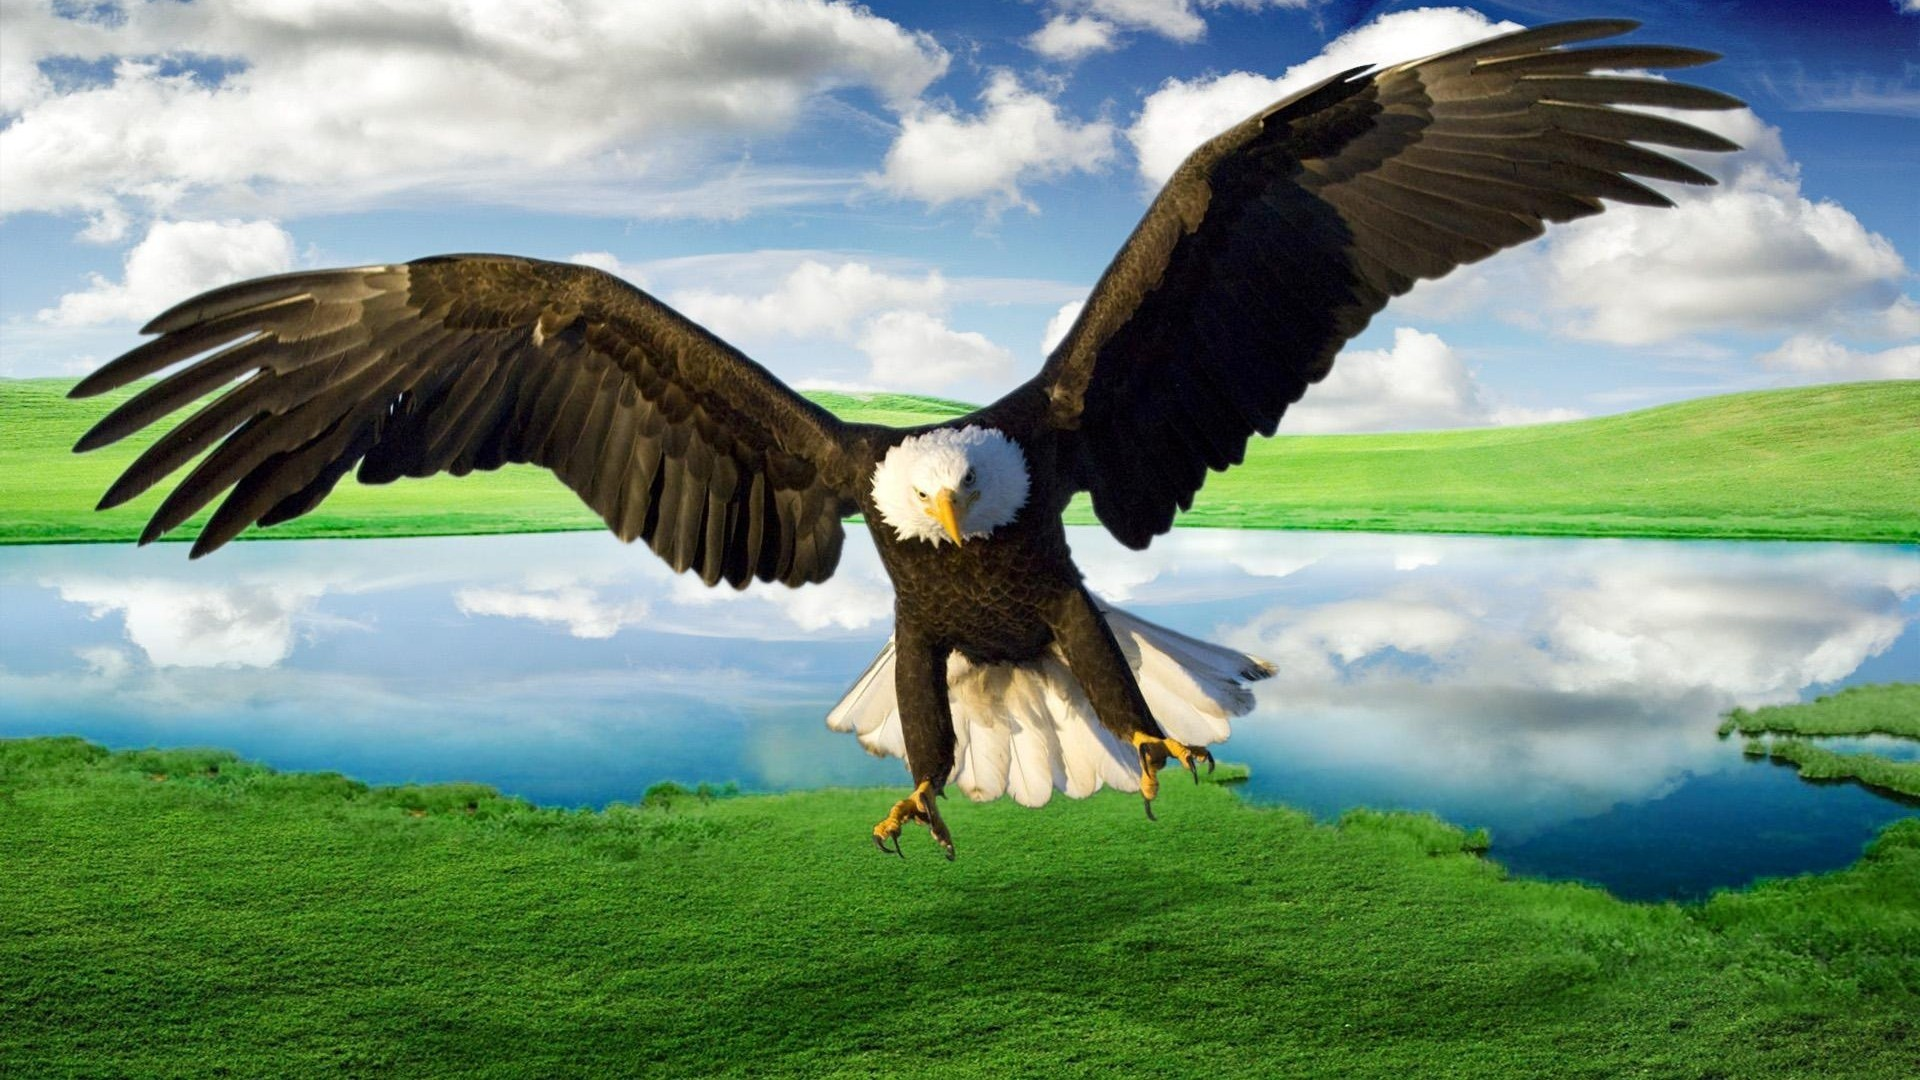 Eagle Wallpaper and Background